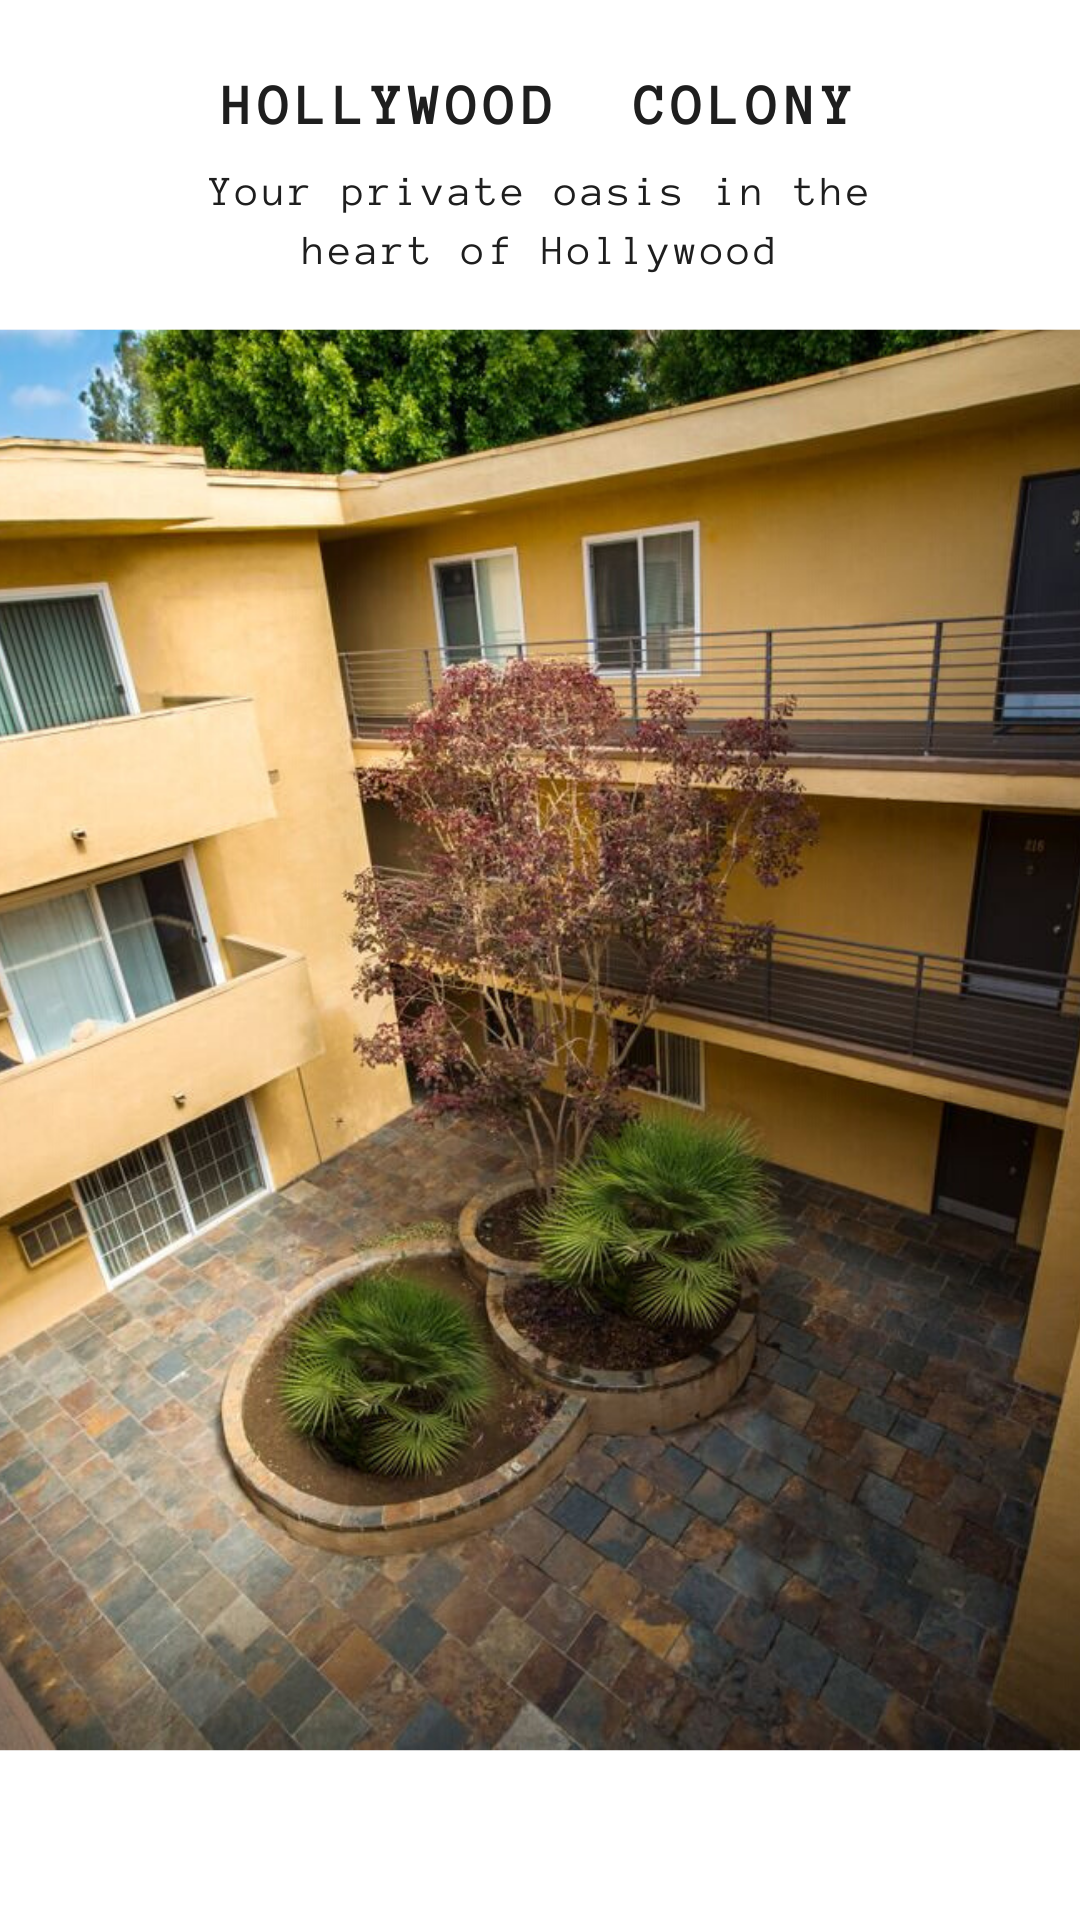 Perfectly Located For Rent Apartments In Hollywood Ca Apartments Hollywood Located Perfectly Rent Apartments For Rent Cool Apartments Hollywood Apartment